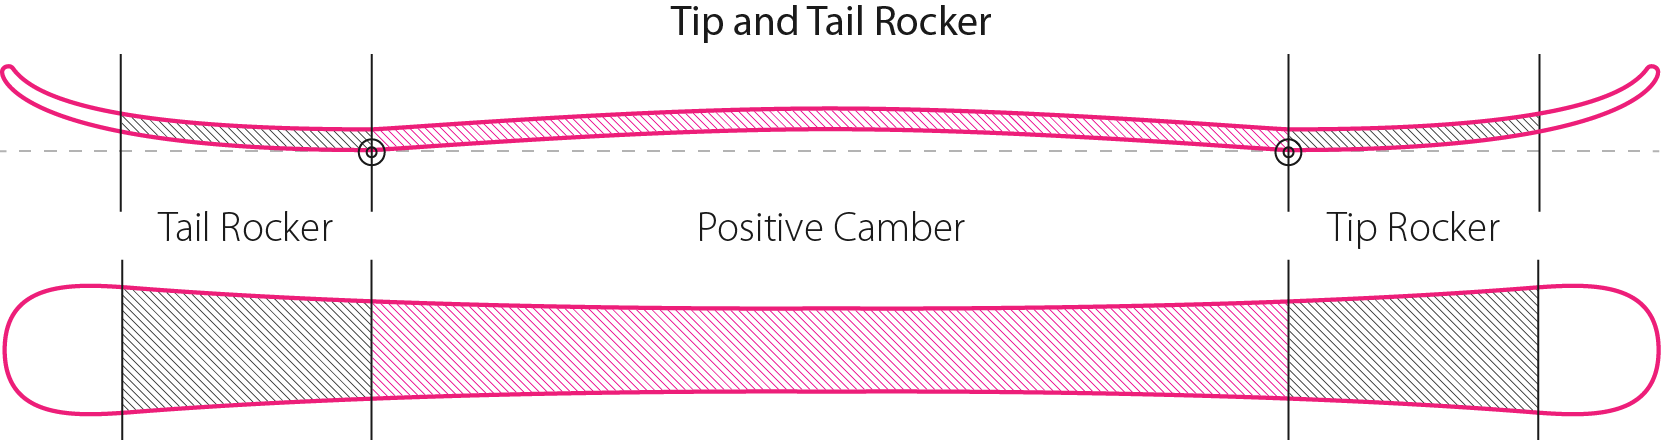 Tip and Tail Rocker